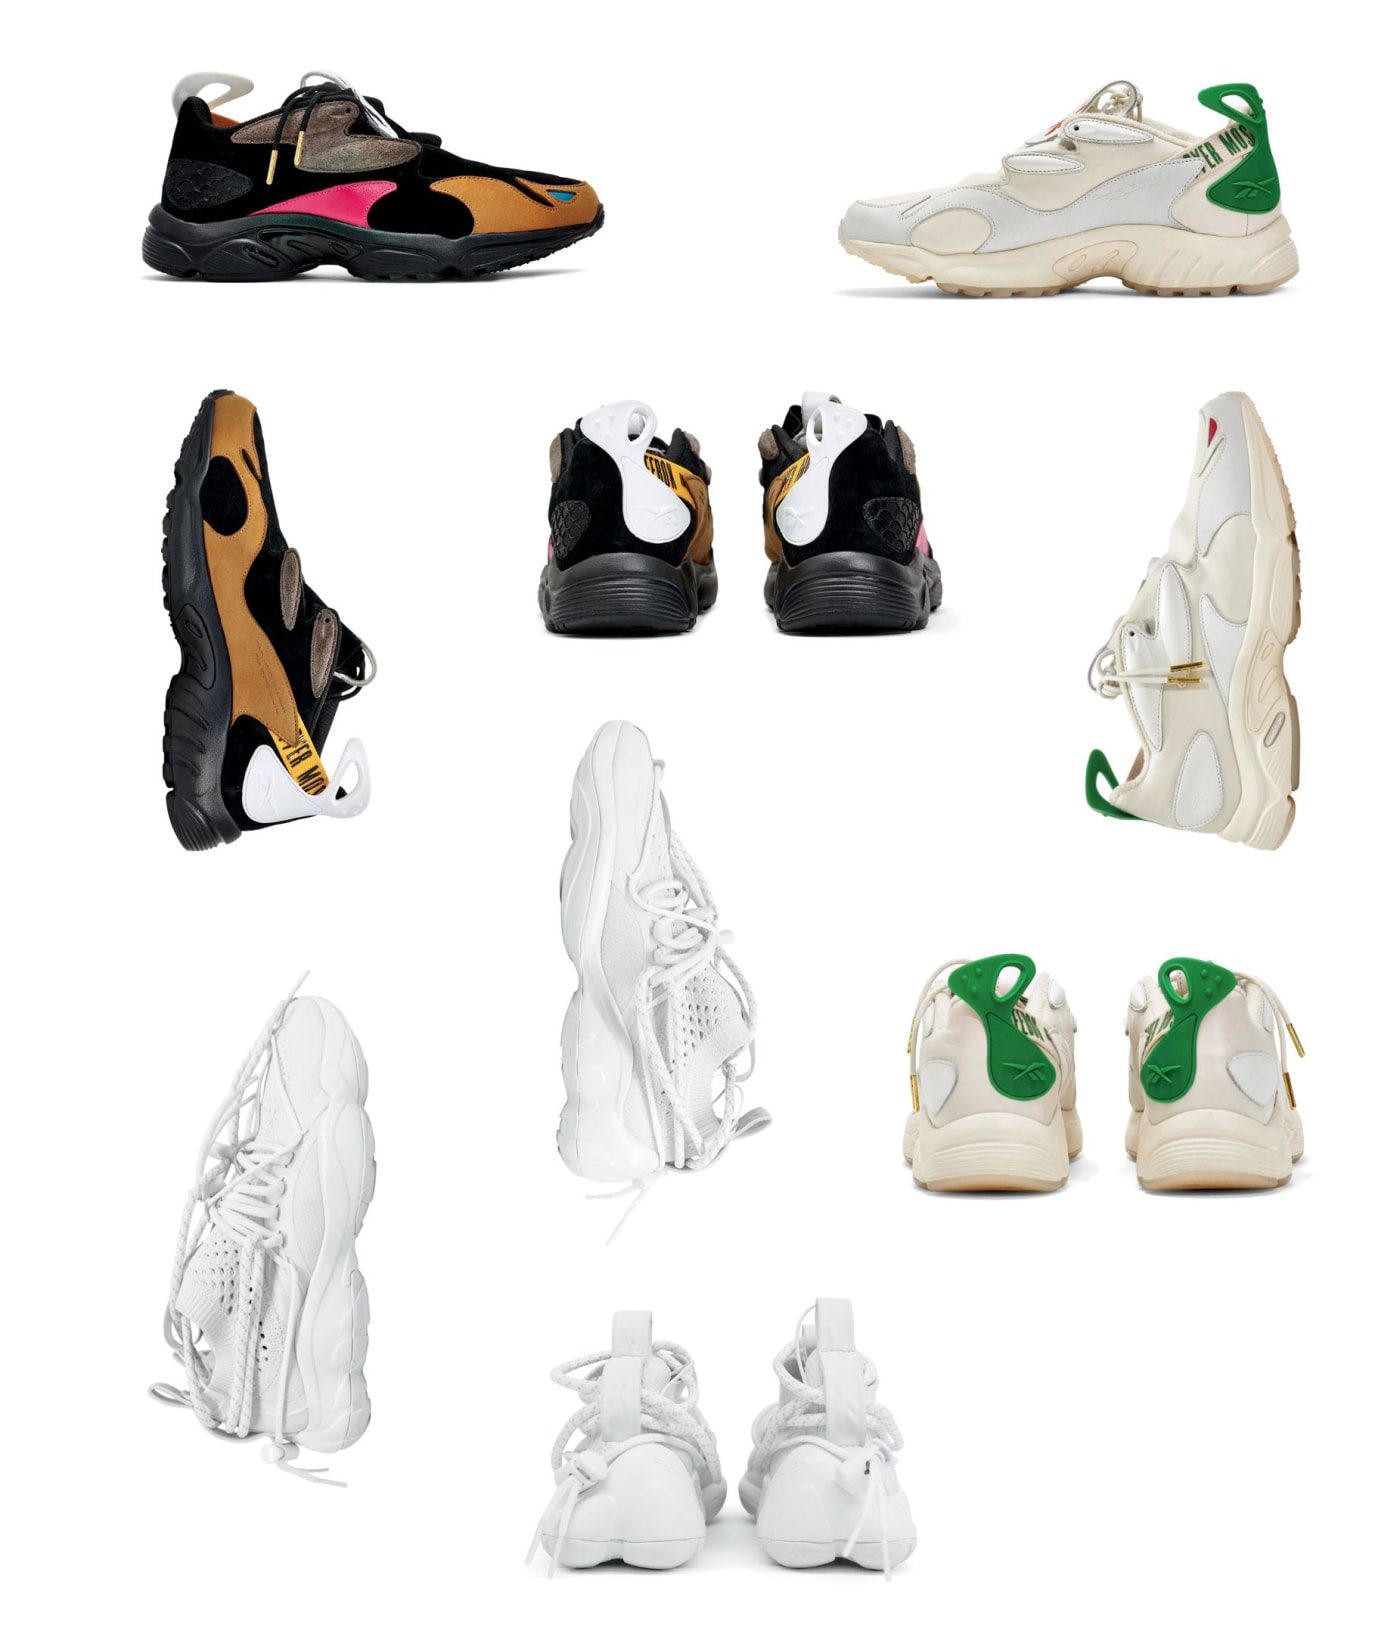 Giày thể thao collab REEBOK X PYER MOSS, DAYTONA EXPERIMENT 2 AND DMX FUSION EXPERIMENT 1